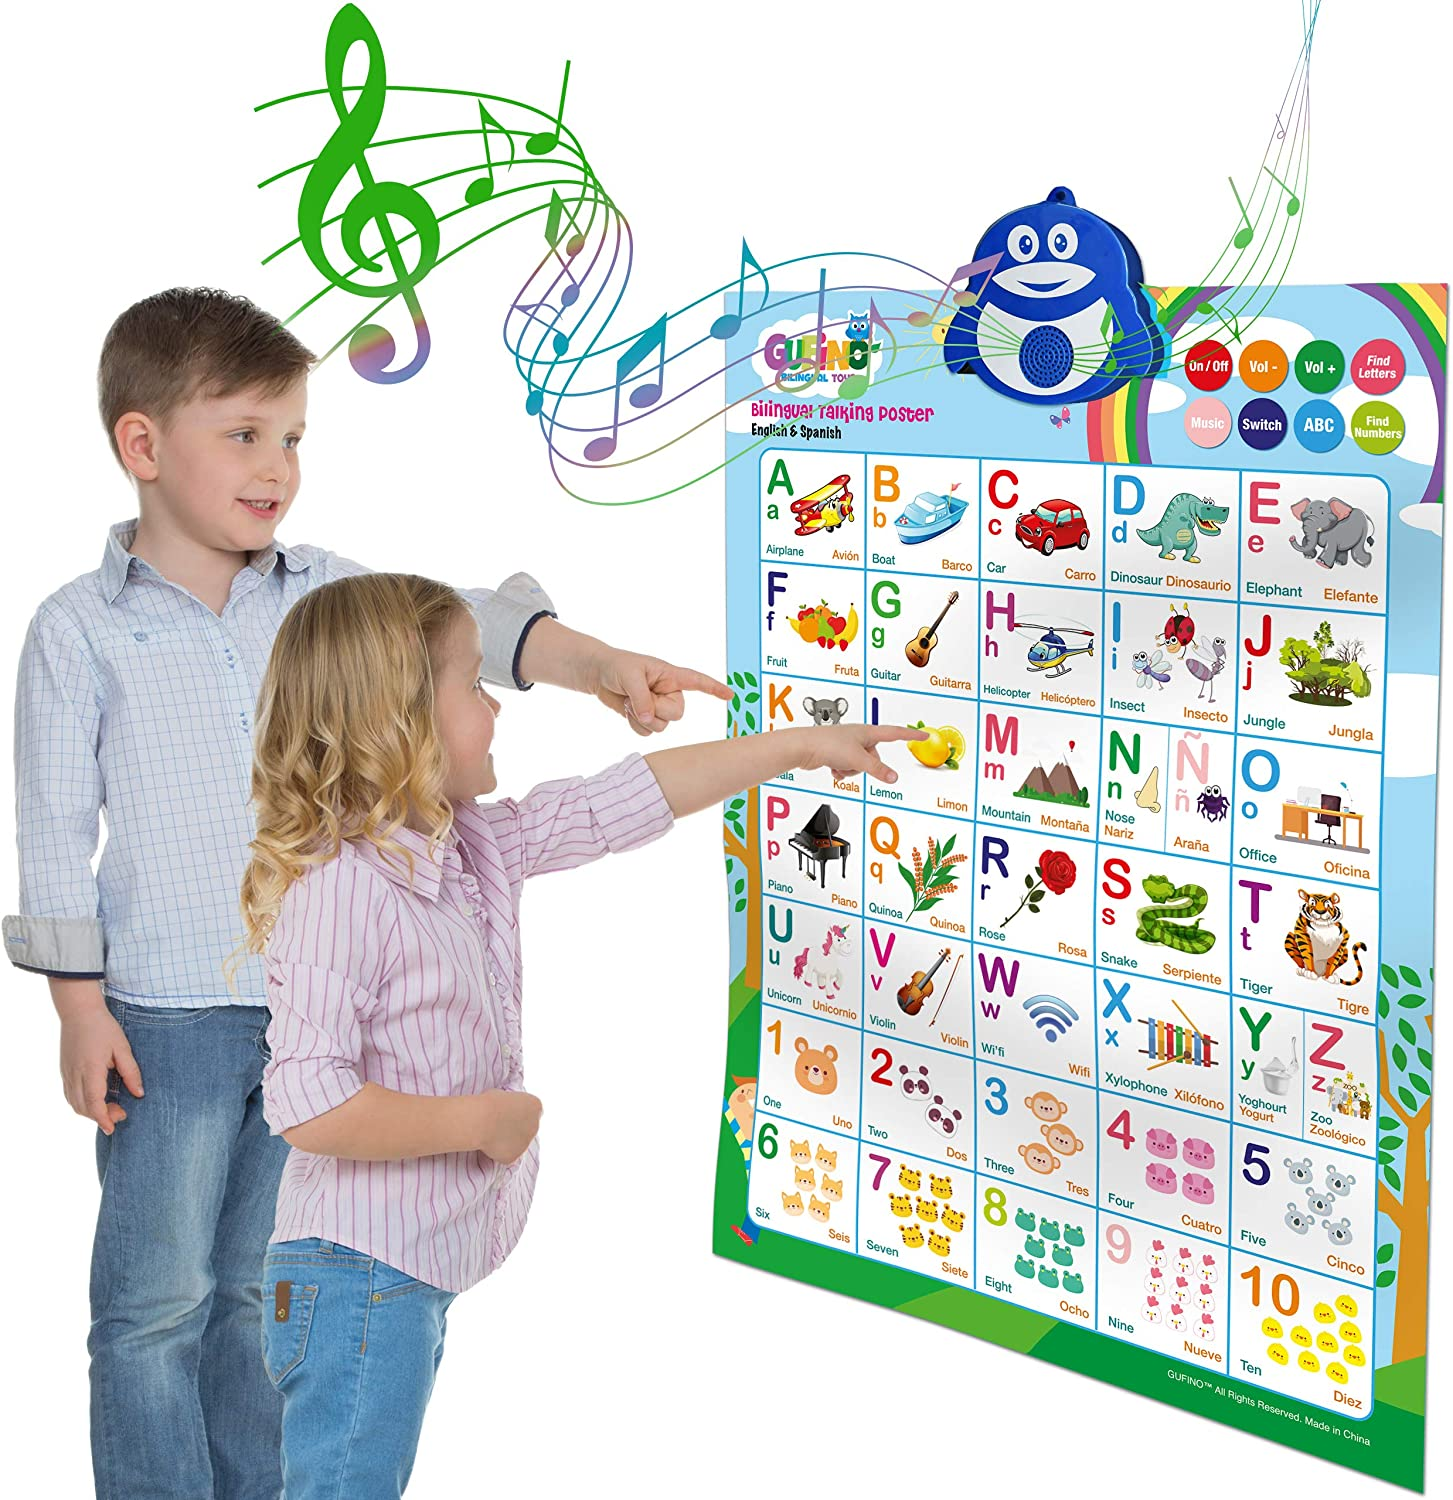 Learning Toys for Toddlers - Interactive Alphabet Poster, Talking ABC and 123s and Songs and Sound of Music - Bilingual Spanish and English - Perfect Educational Toys for 3 Year Old